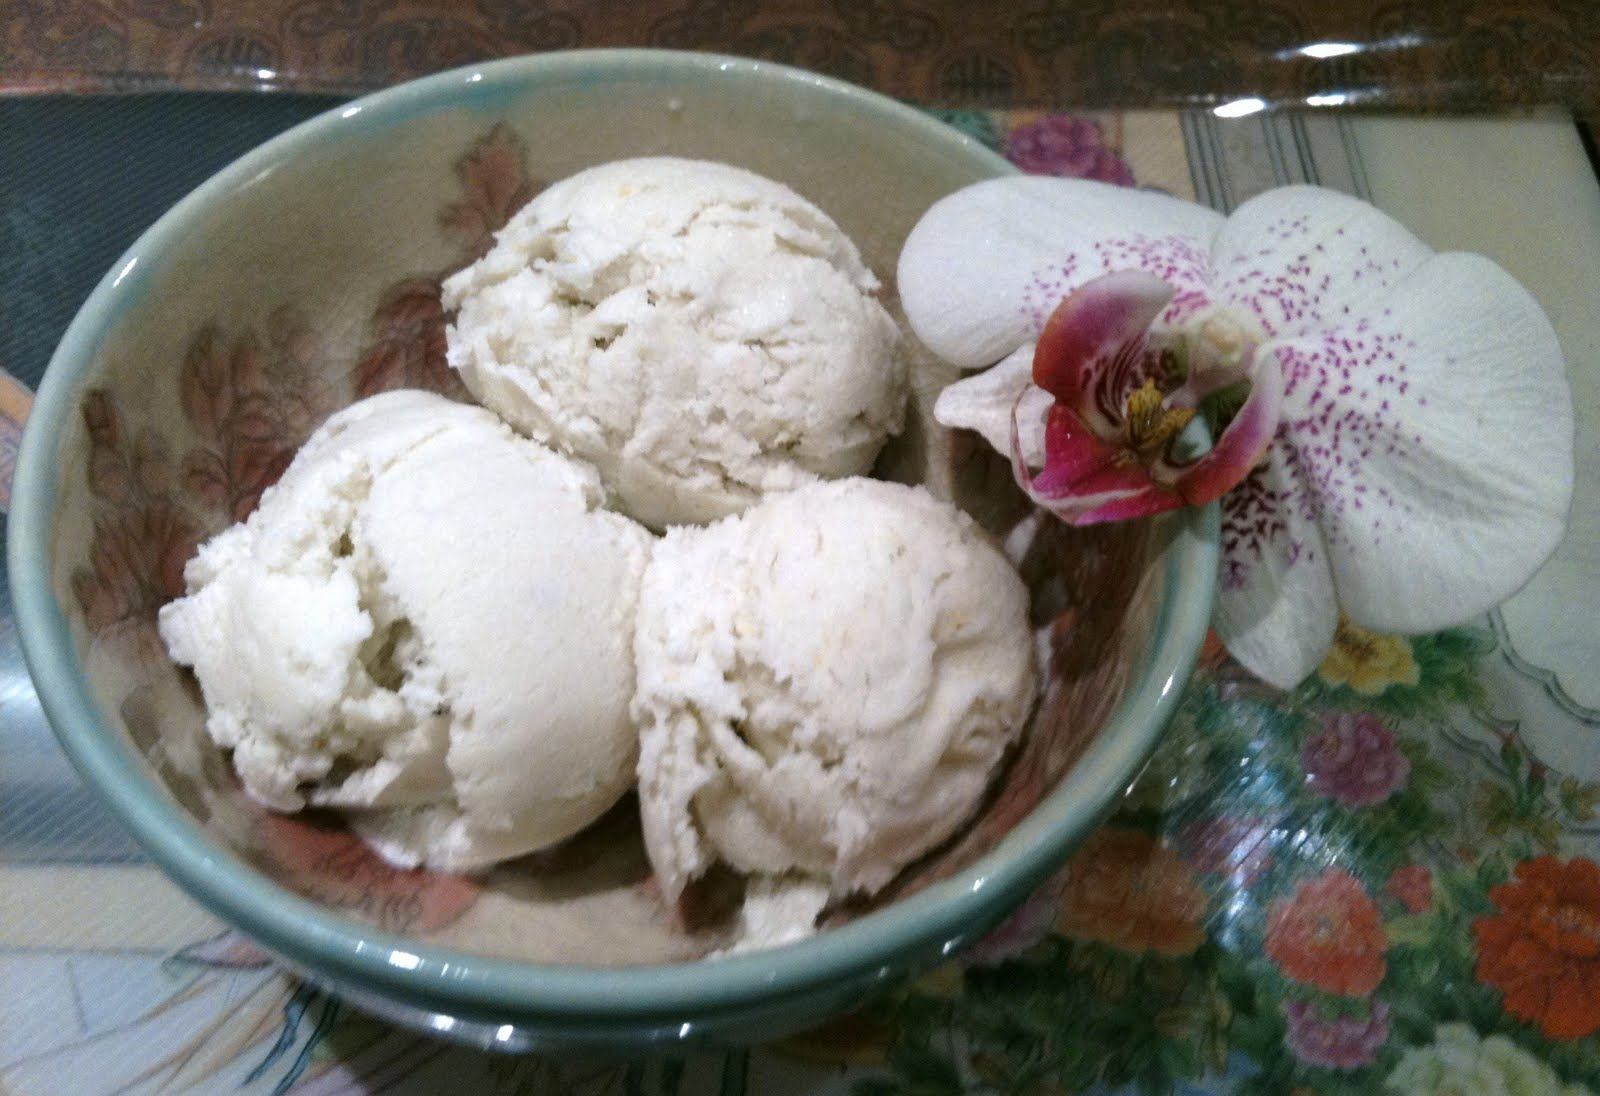 Thai food explained: Coconut ice cream